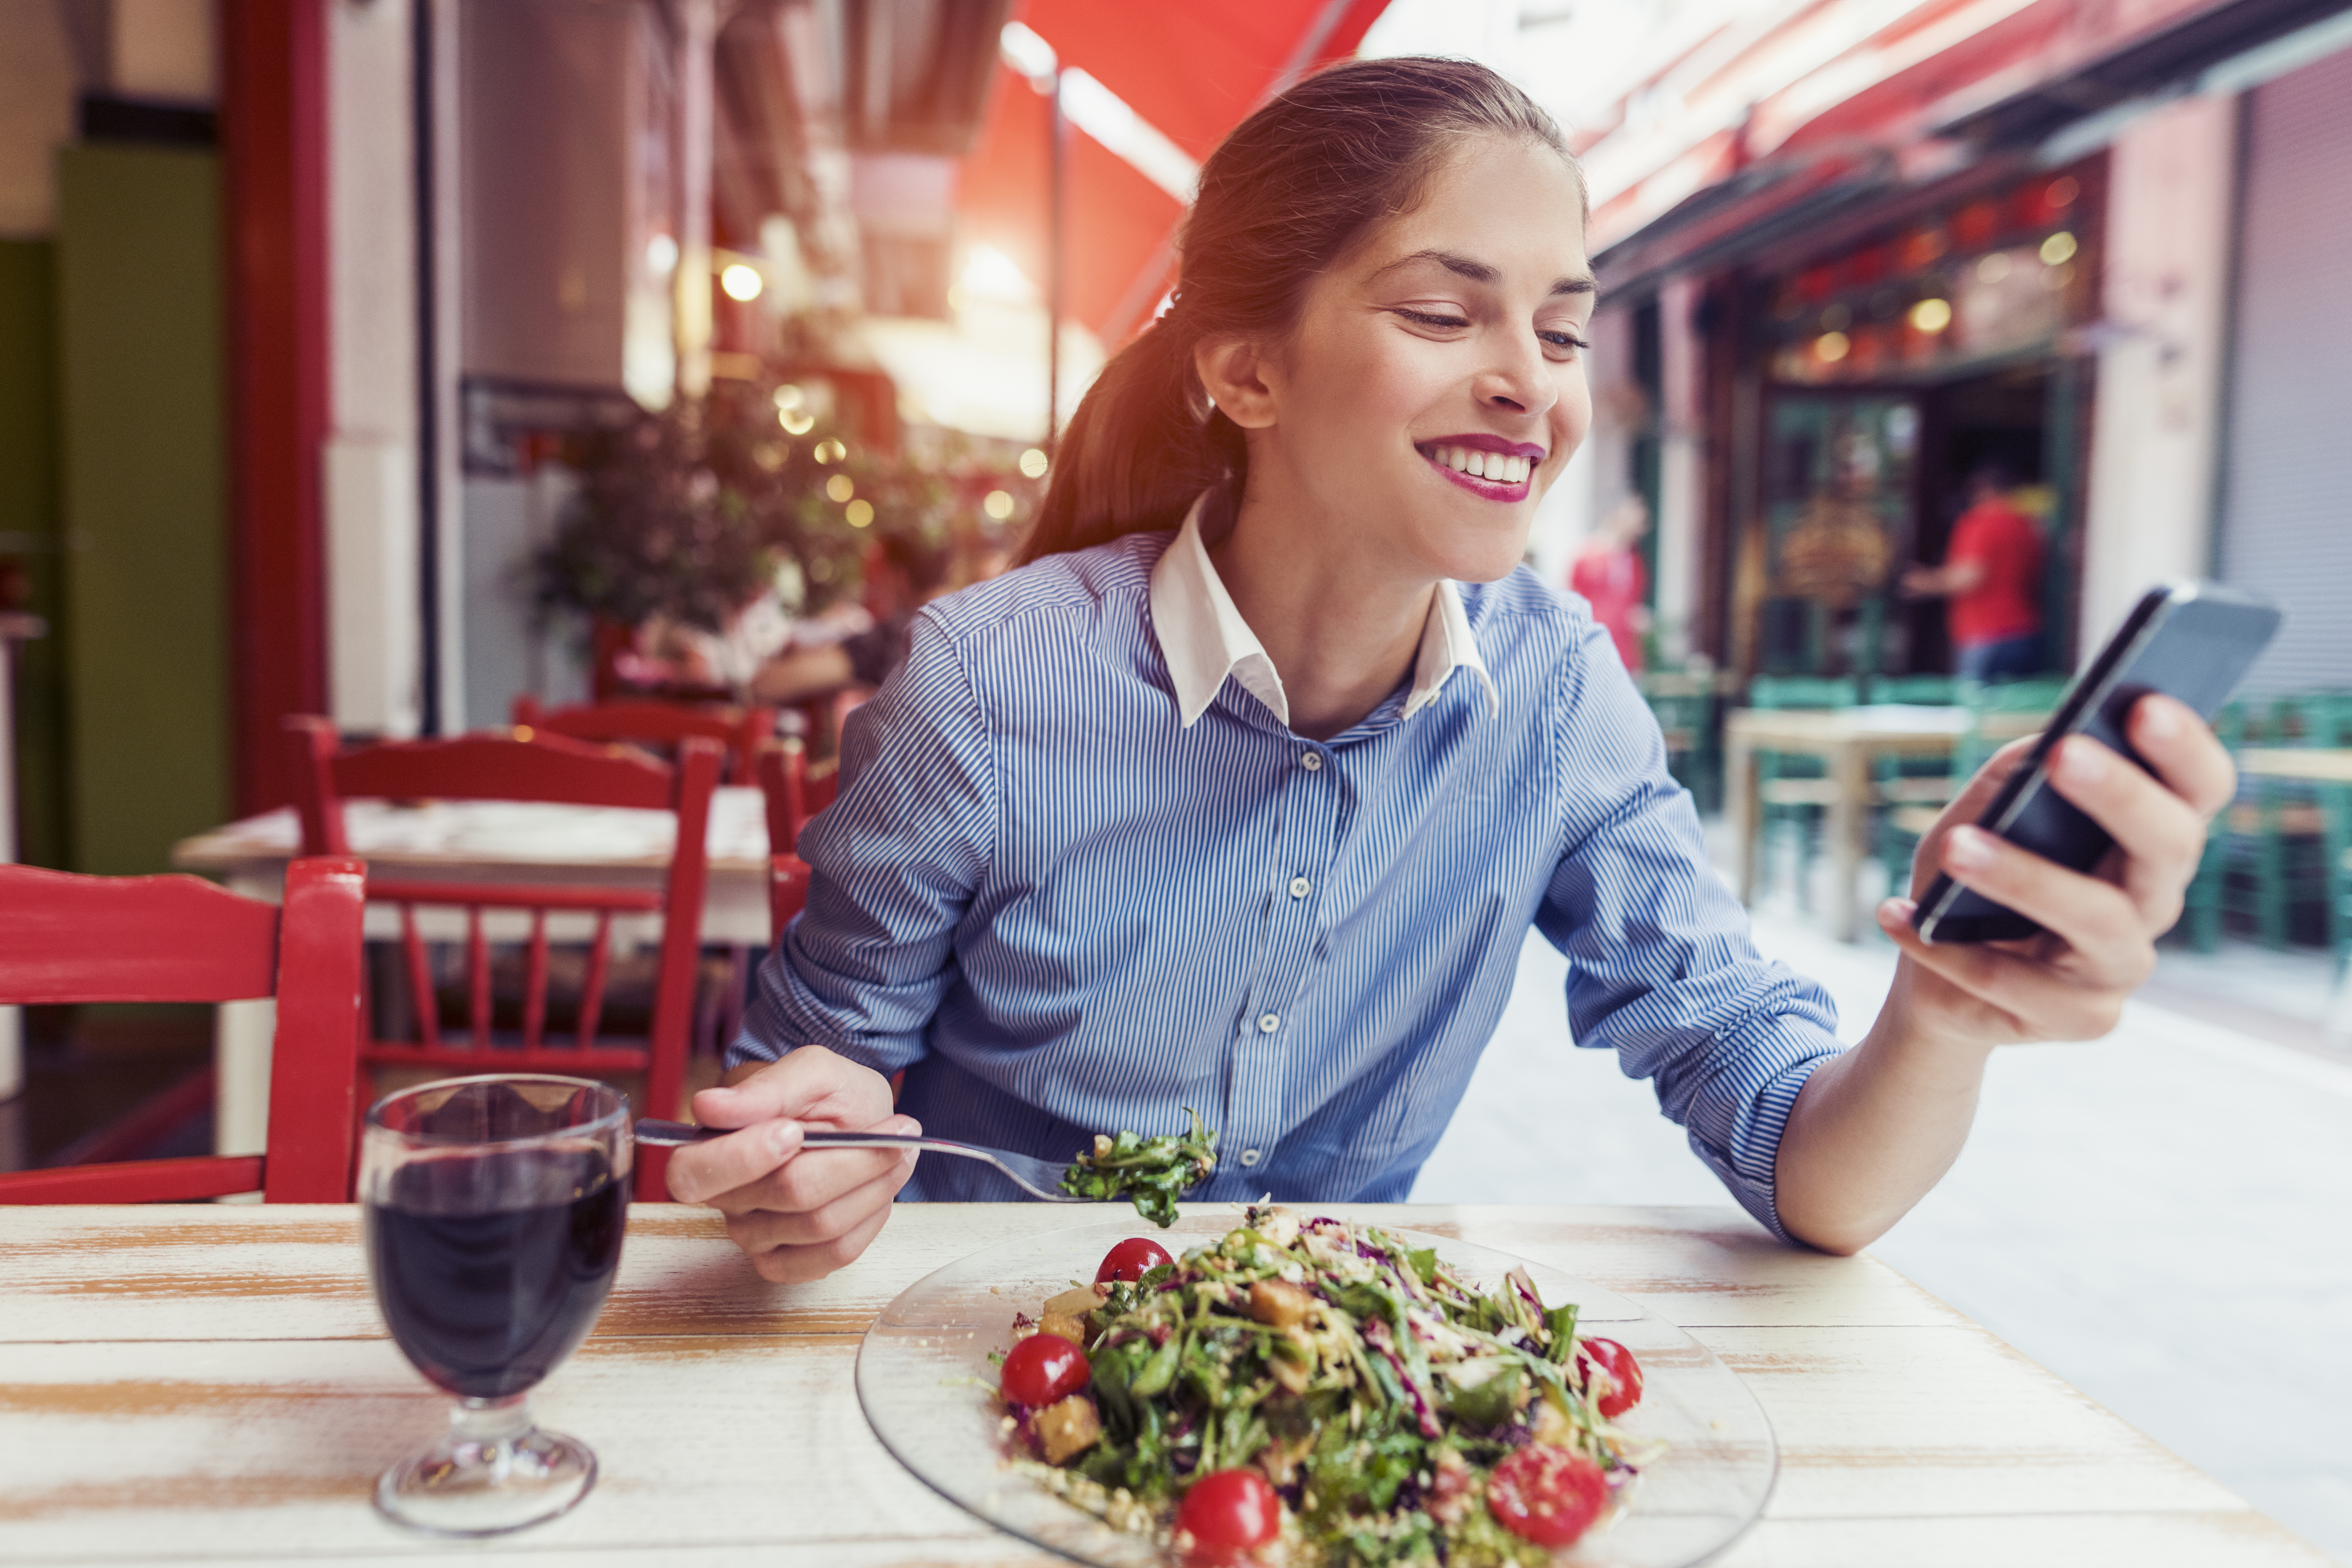 beautiful young woman using an application to send an sms message in her smartphone device while eating a saladbeautiful young woman using an application to send an sms message in her smartphone device while eating a salad